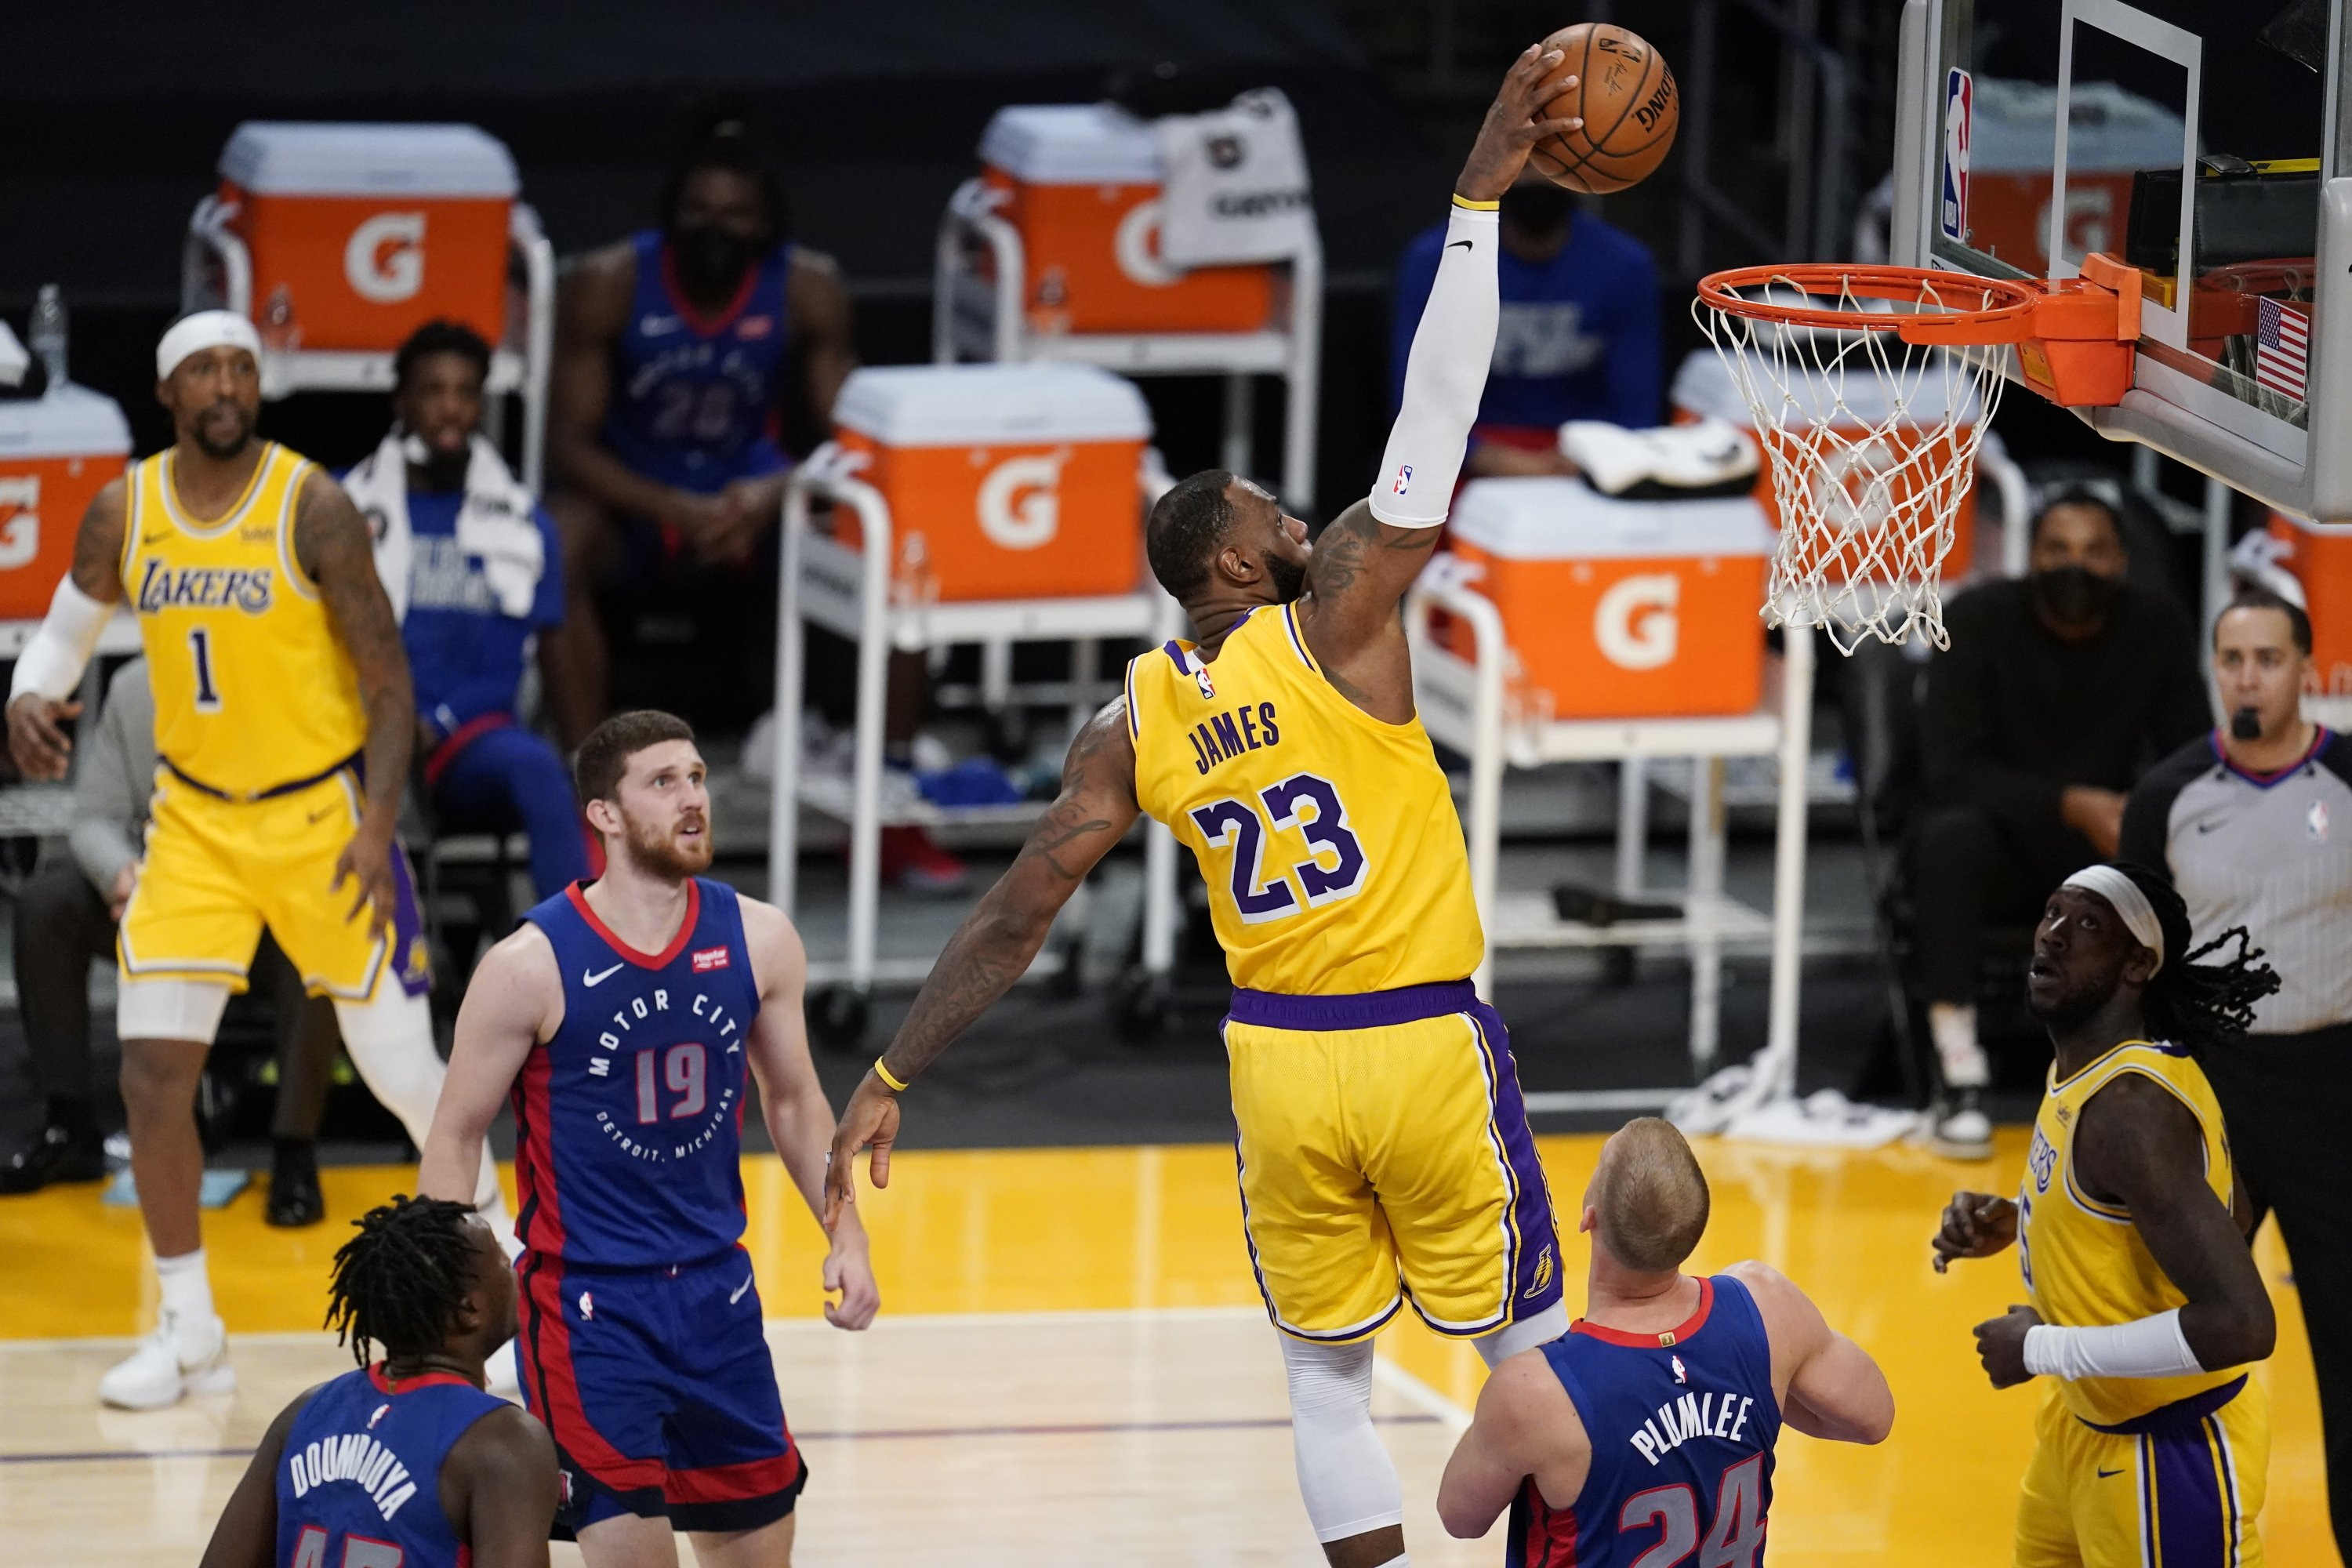 Los Angeles Lakers forward LeBron James (C) dunks against the Detroit Pistons during an NBA basketball game, Los Angeles, U.S., Feb. 6, 2021. (AP Photo)